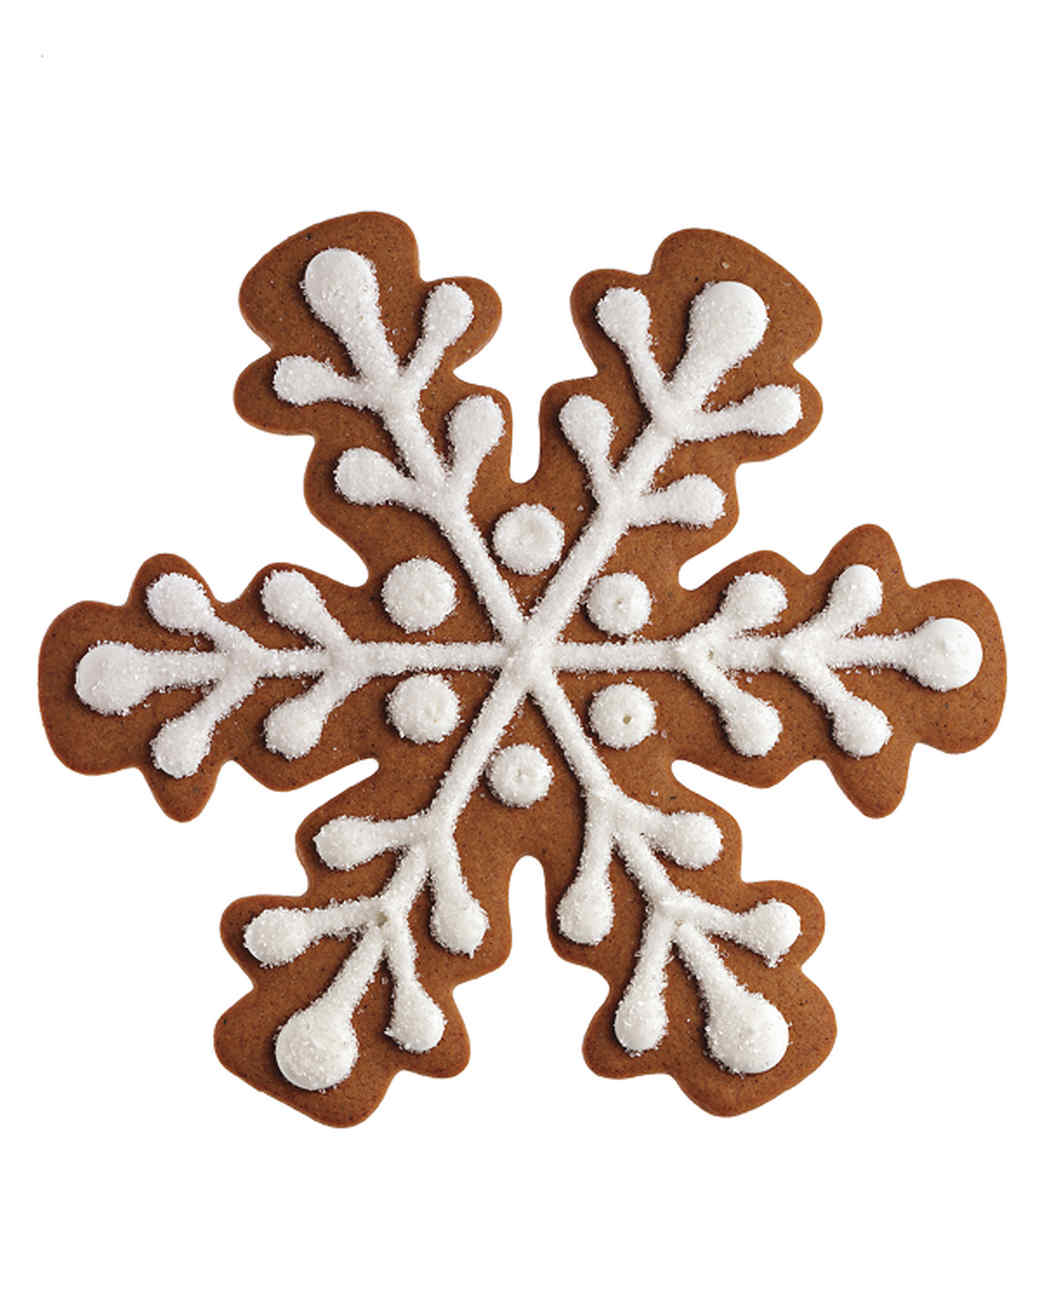 snowflake-cookie-sd101477toc9s.jpg